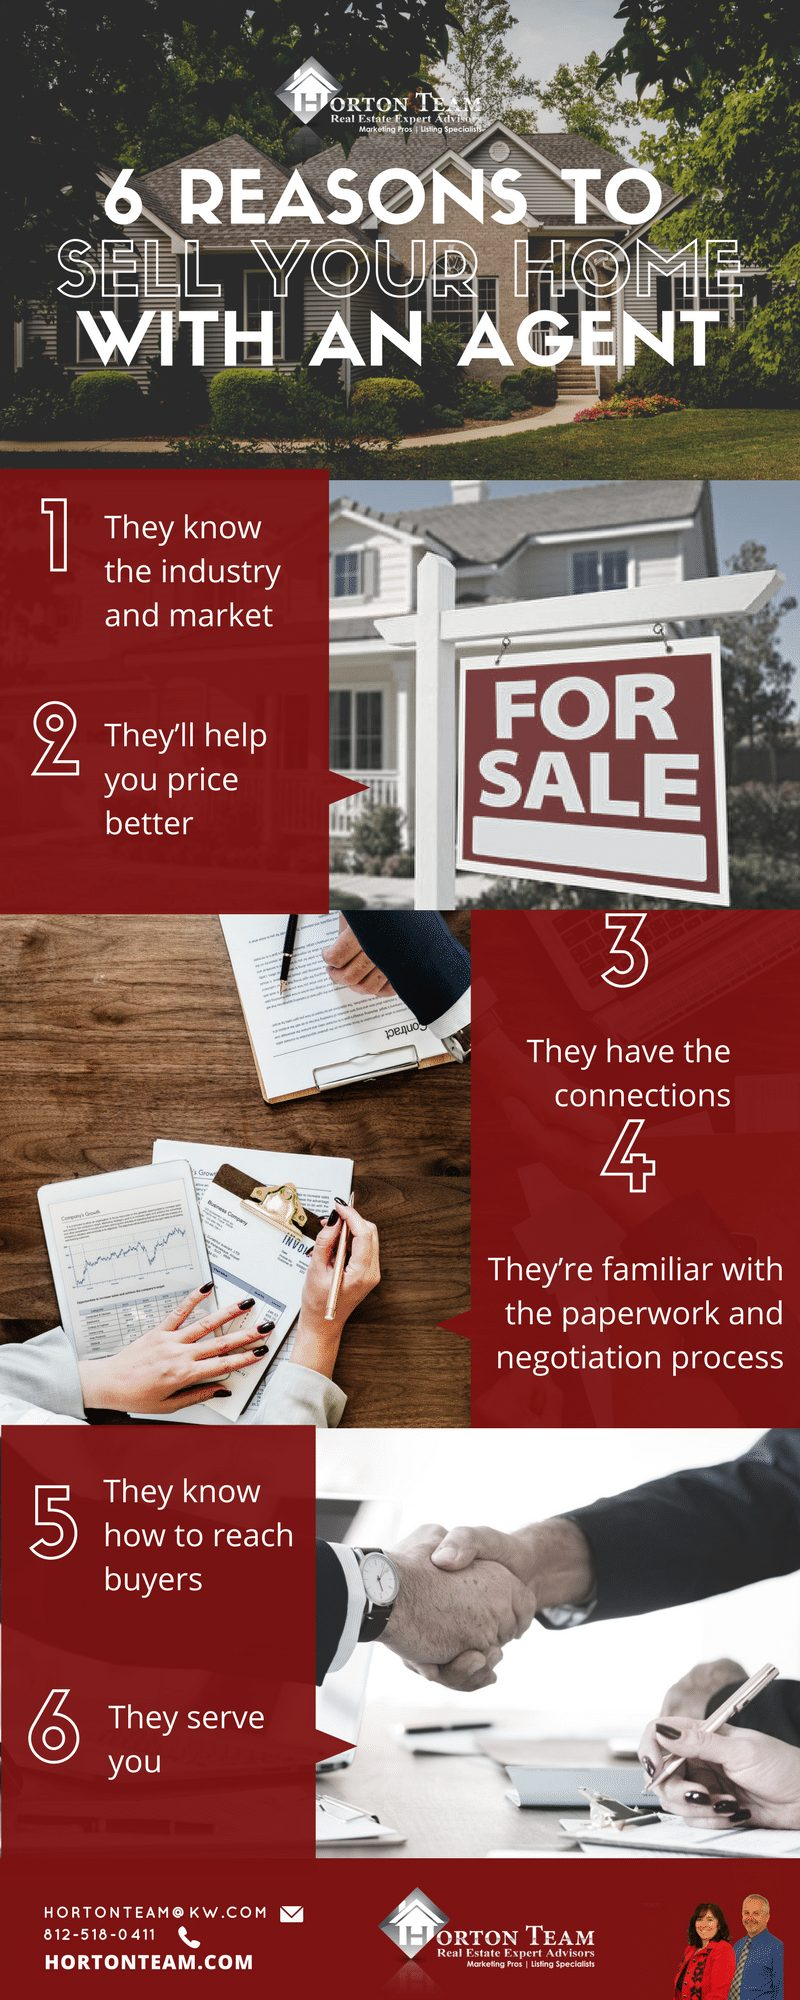 6 Reasons to Sell Your Home with an Agent